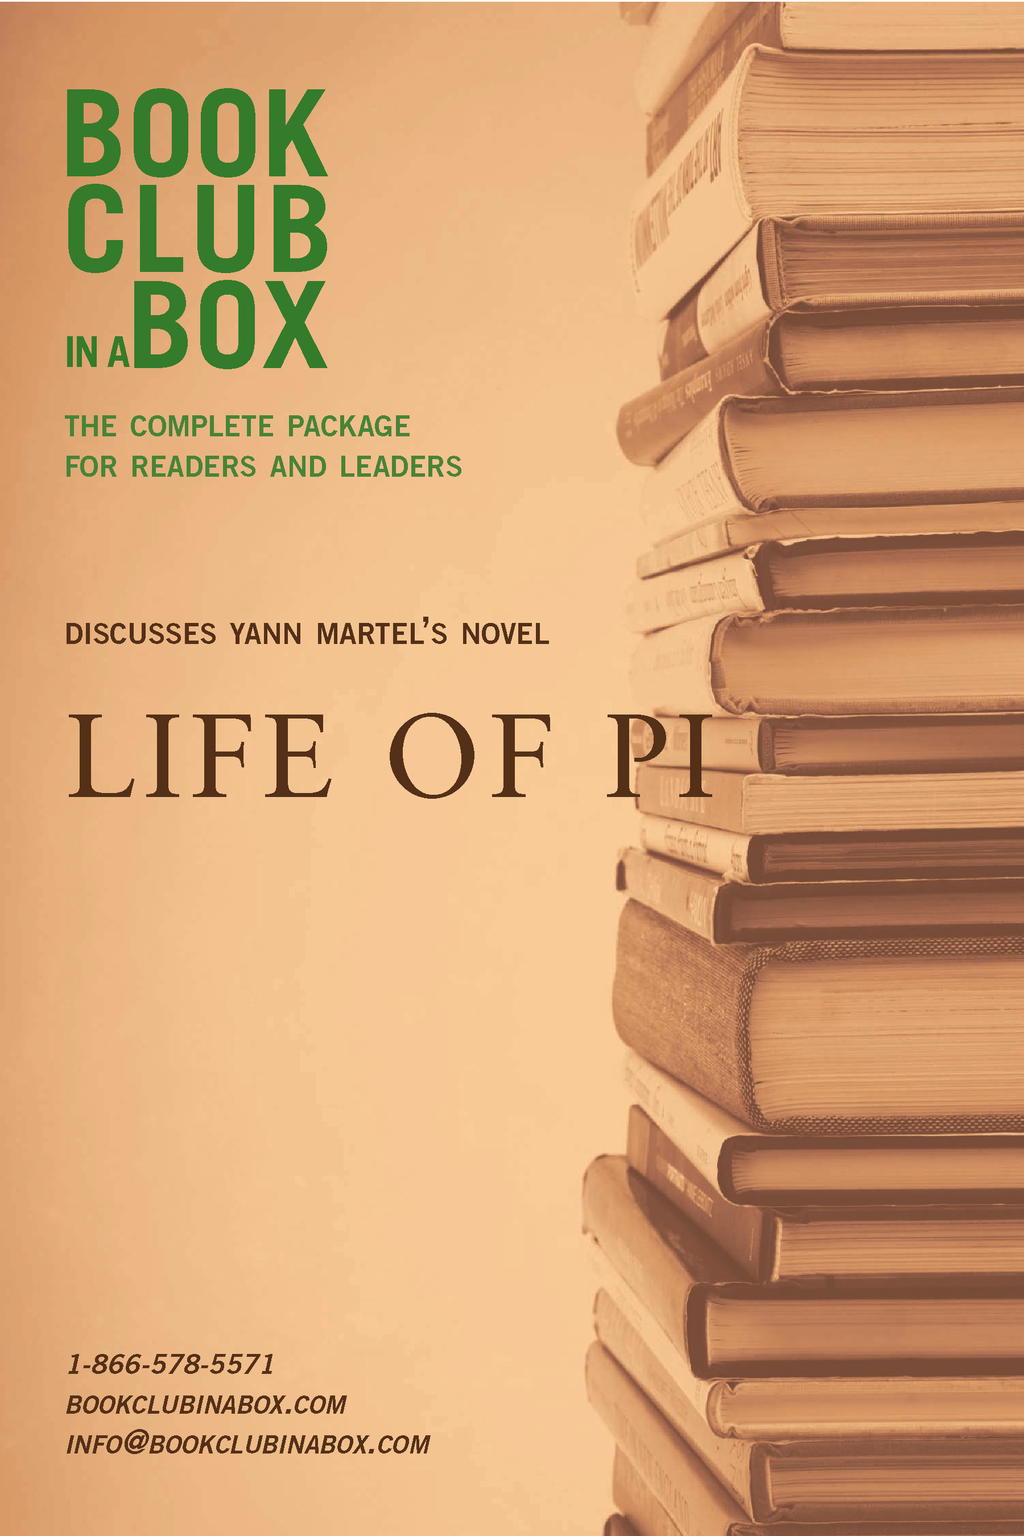 Bookclub-in-a-Box Discusses Yann Martel's novel, Life of Pi: The Complete Guide for Readers and Leaders By: Marilyn Herbert